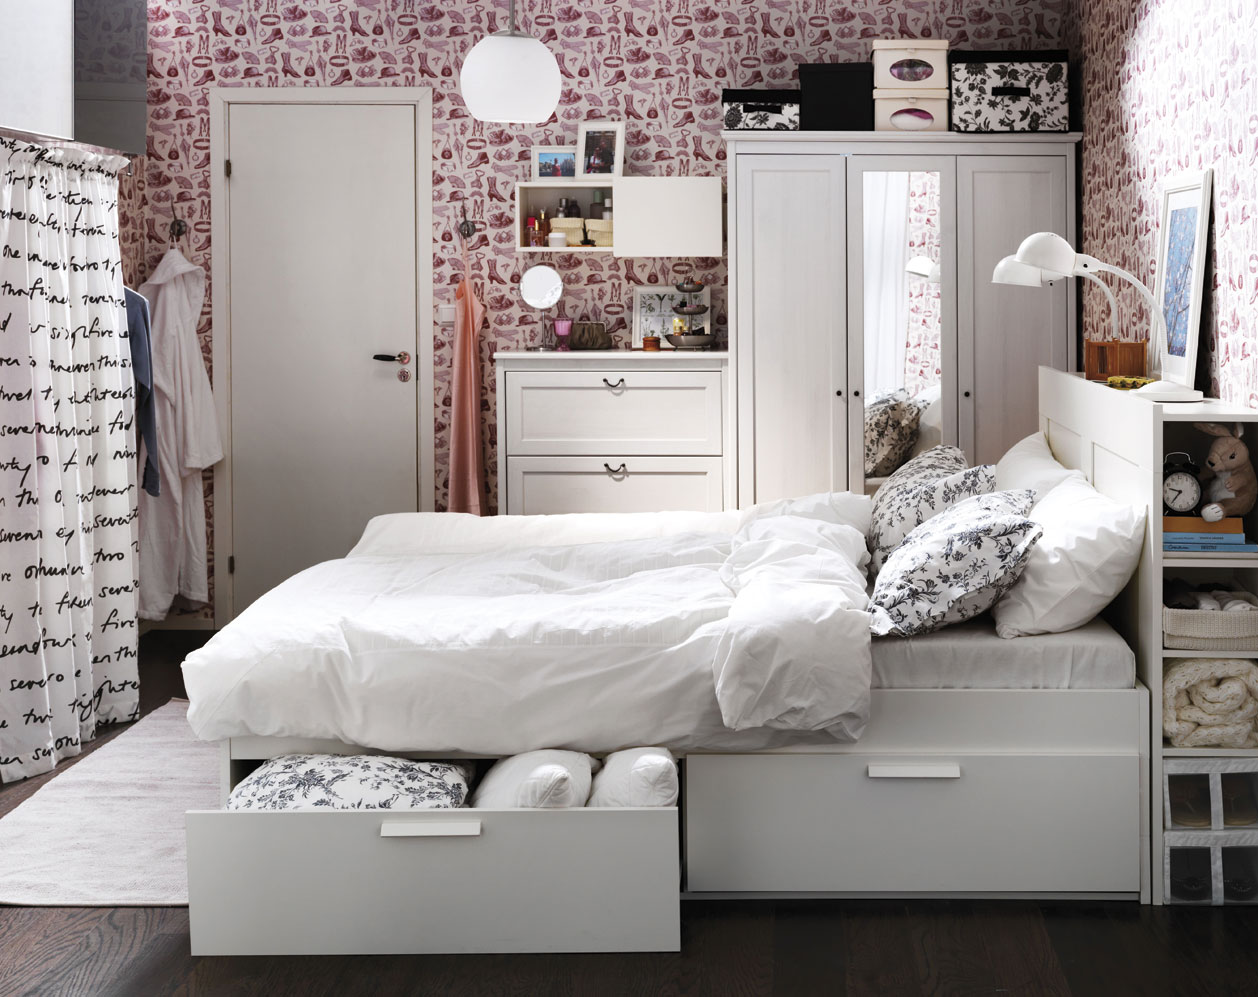 Dormitorios ikea 2013 - Ikea ideas decoracion ...